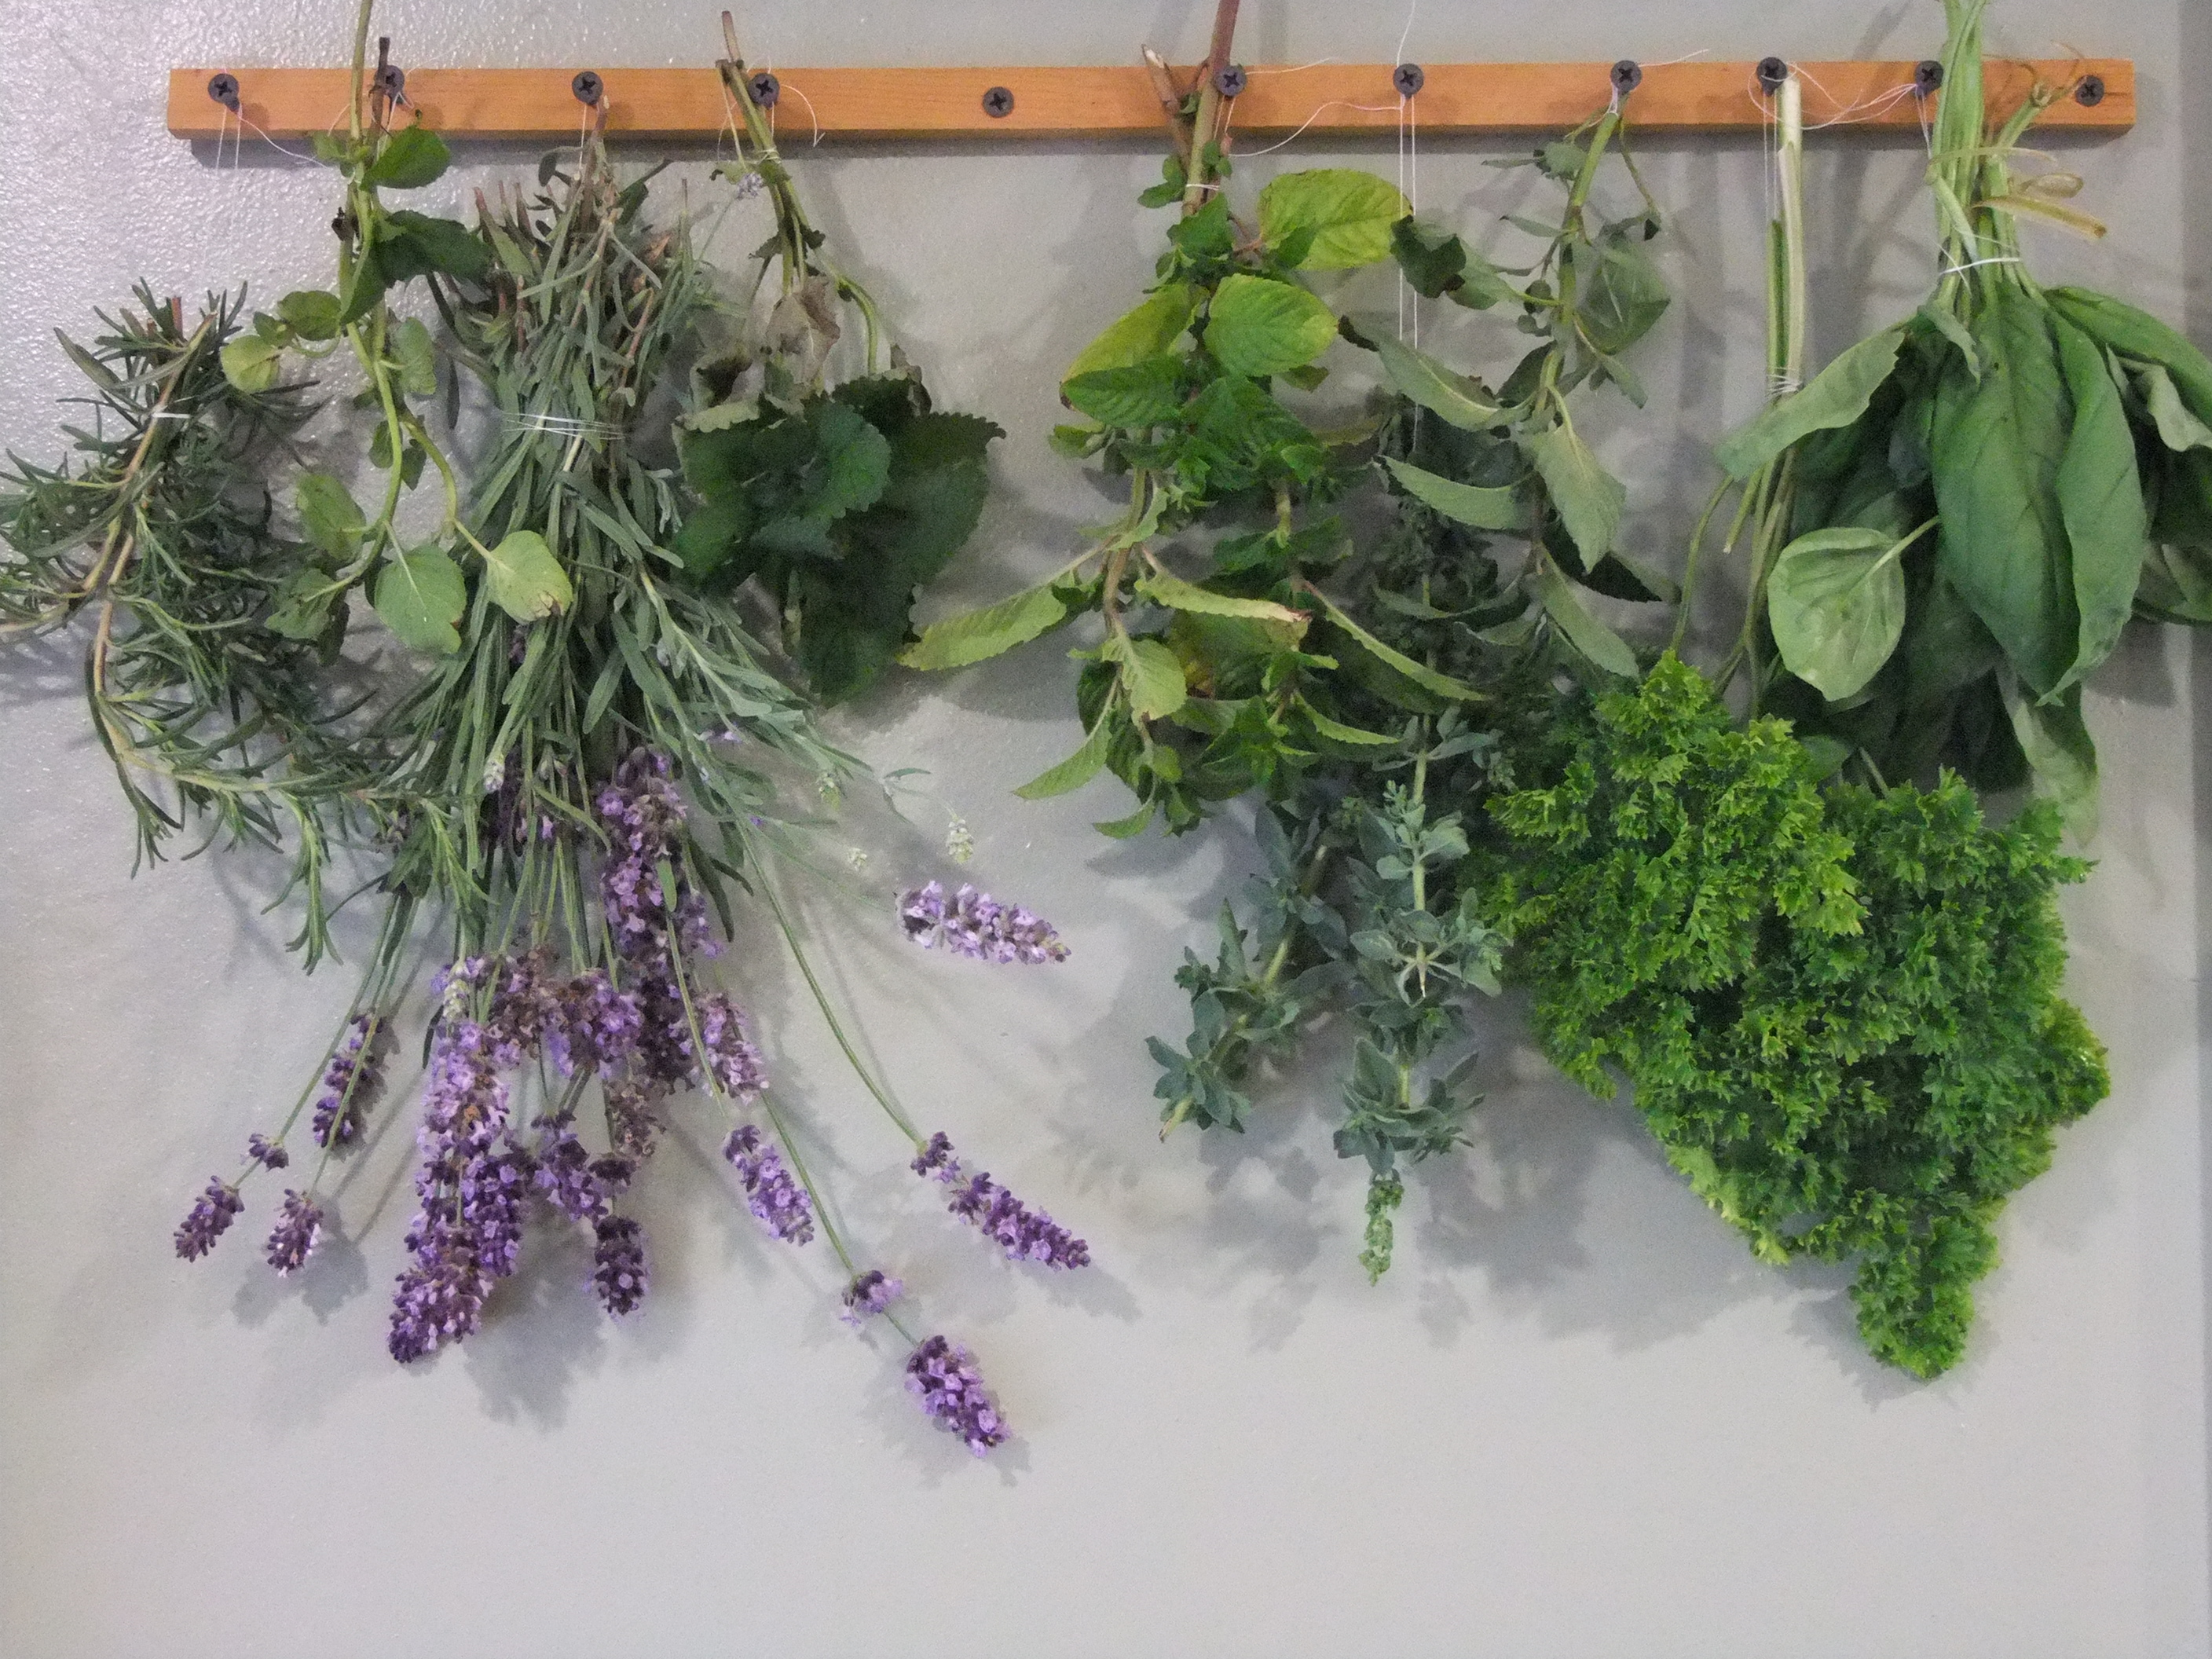 How To Make An Herb Drying Rack and Harvest Herbs